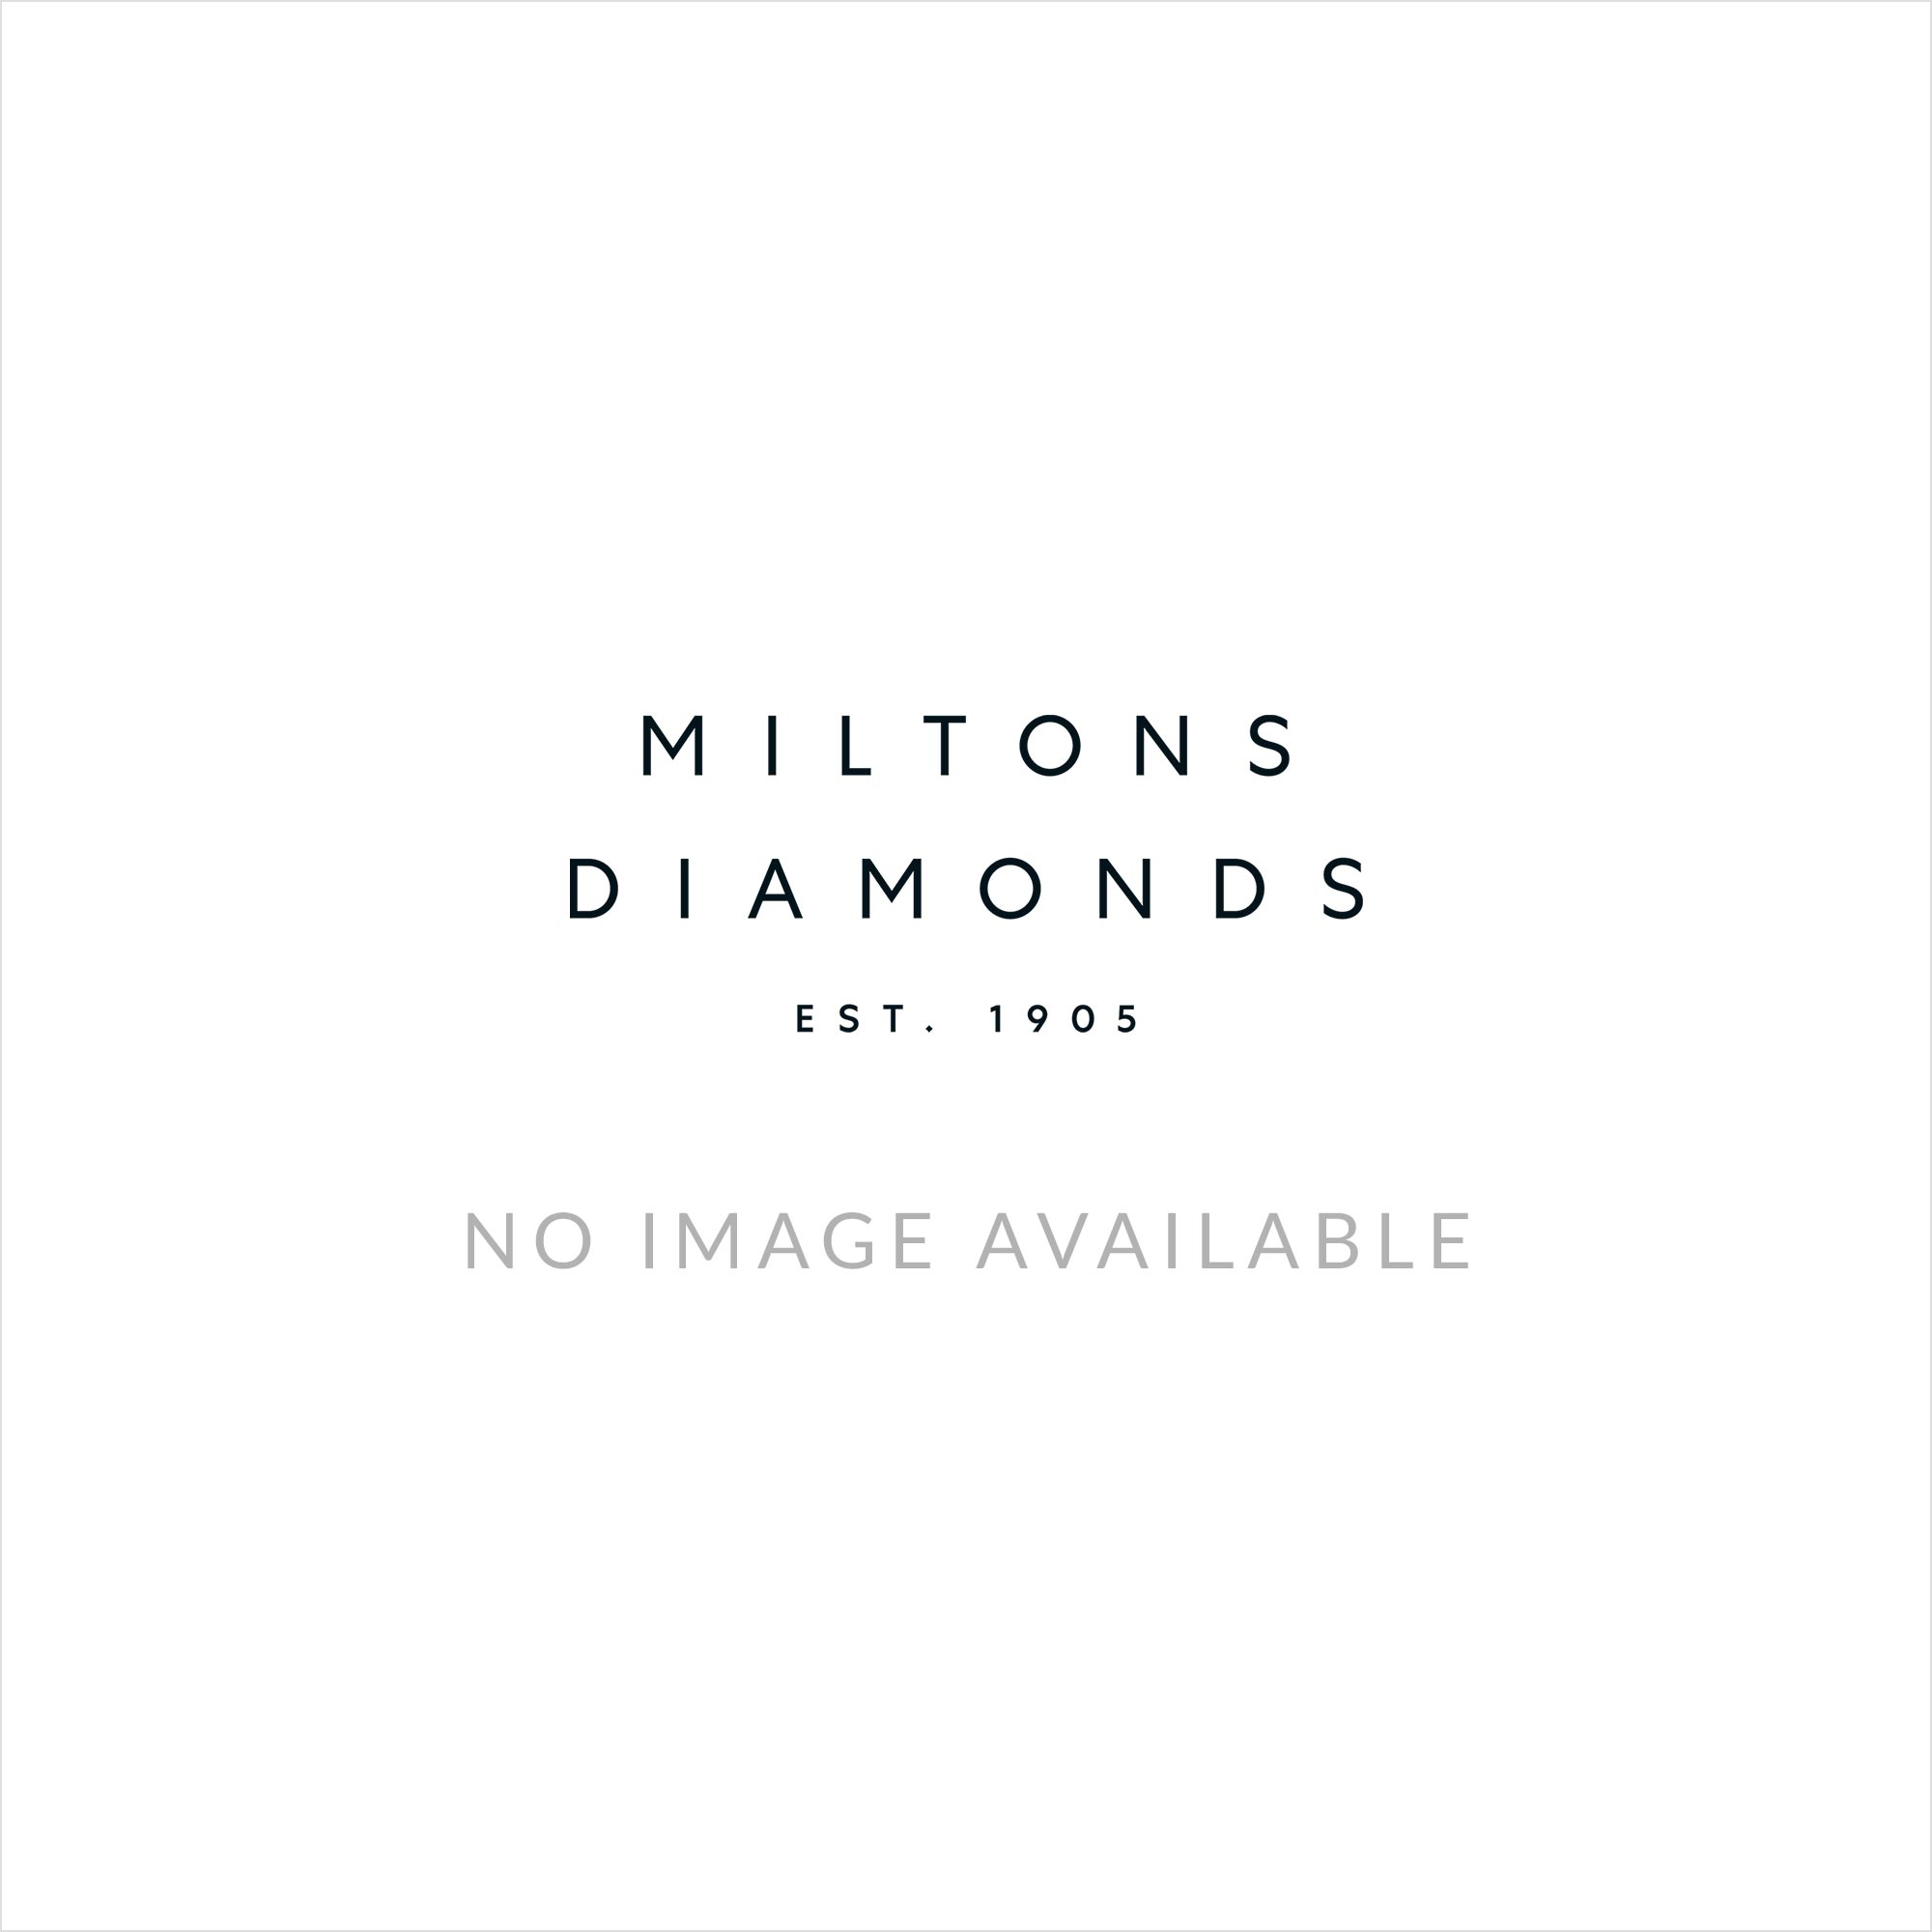 diamond qedleov rings solitaire engagement ring solitary beautiful